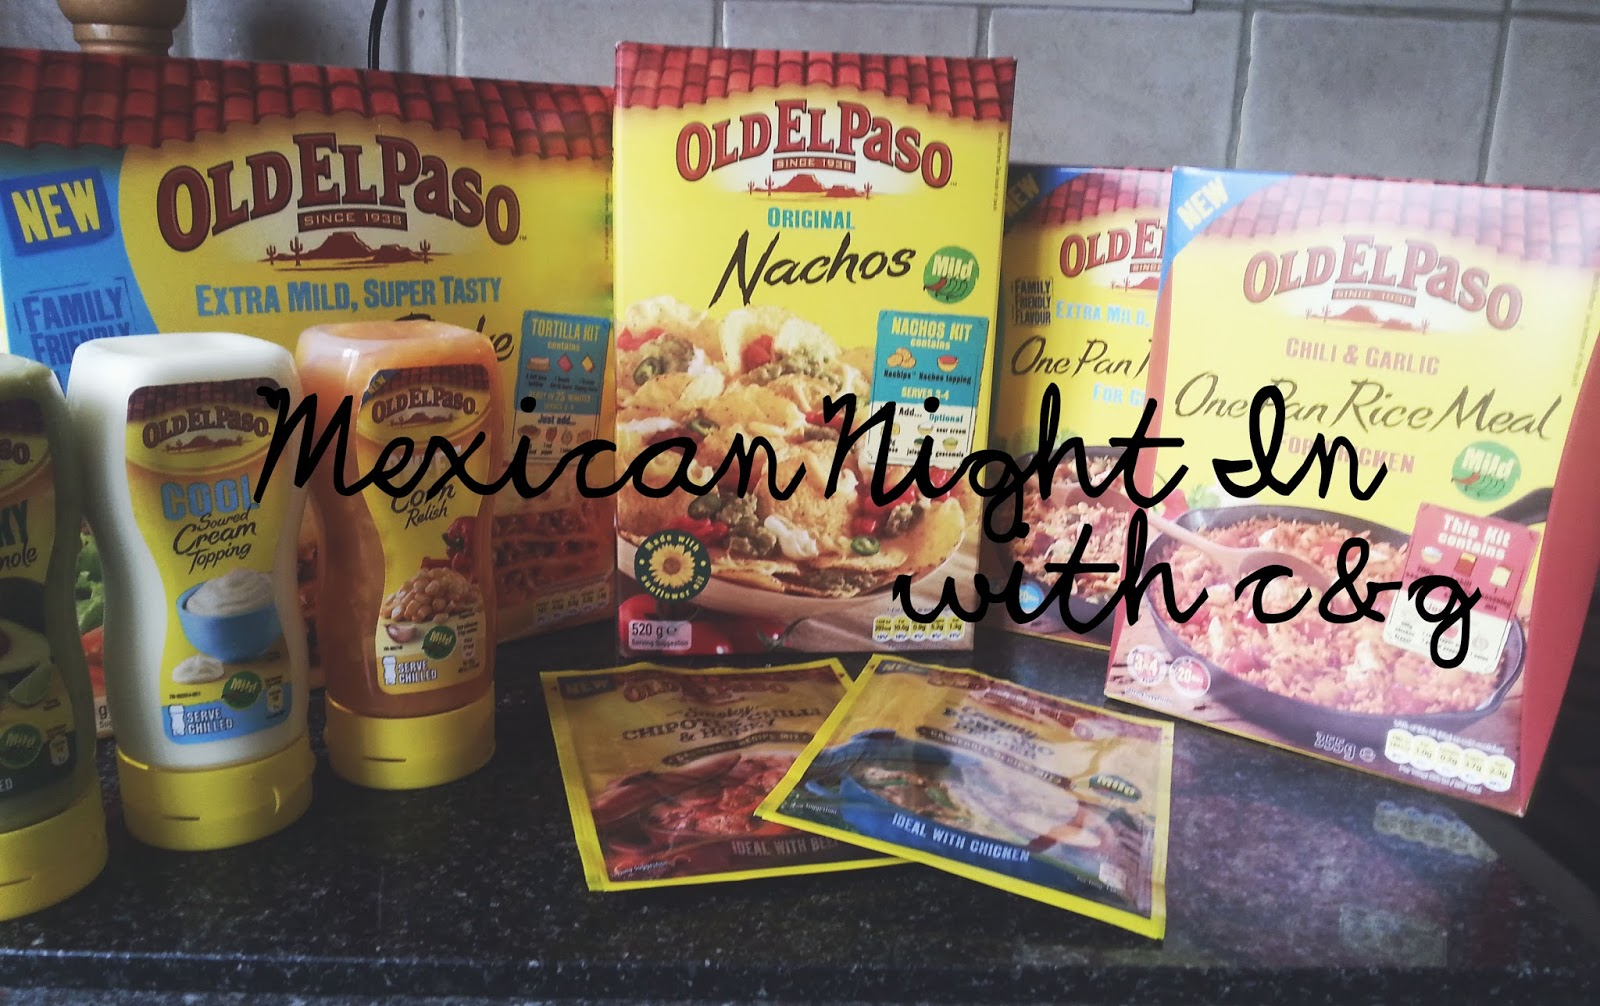 Vegetarian Mexican Dishes with Old El Paso